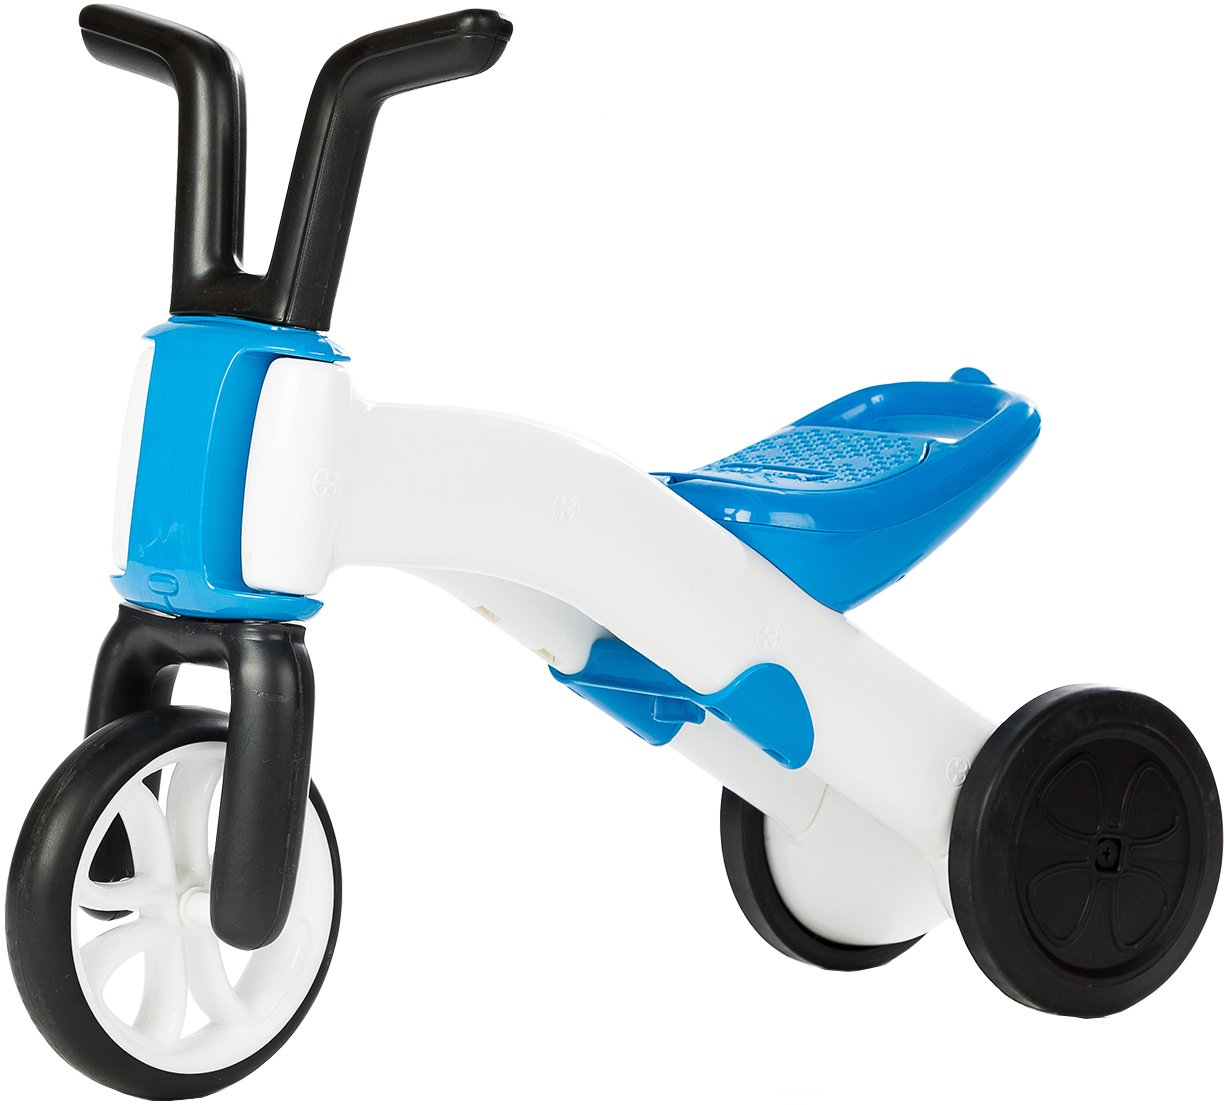 Top 15 Best Riding Toys for 1 Year Olds Reviews in 2020 9